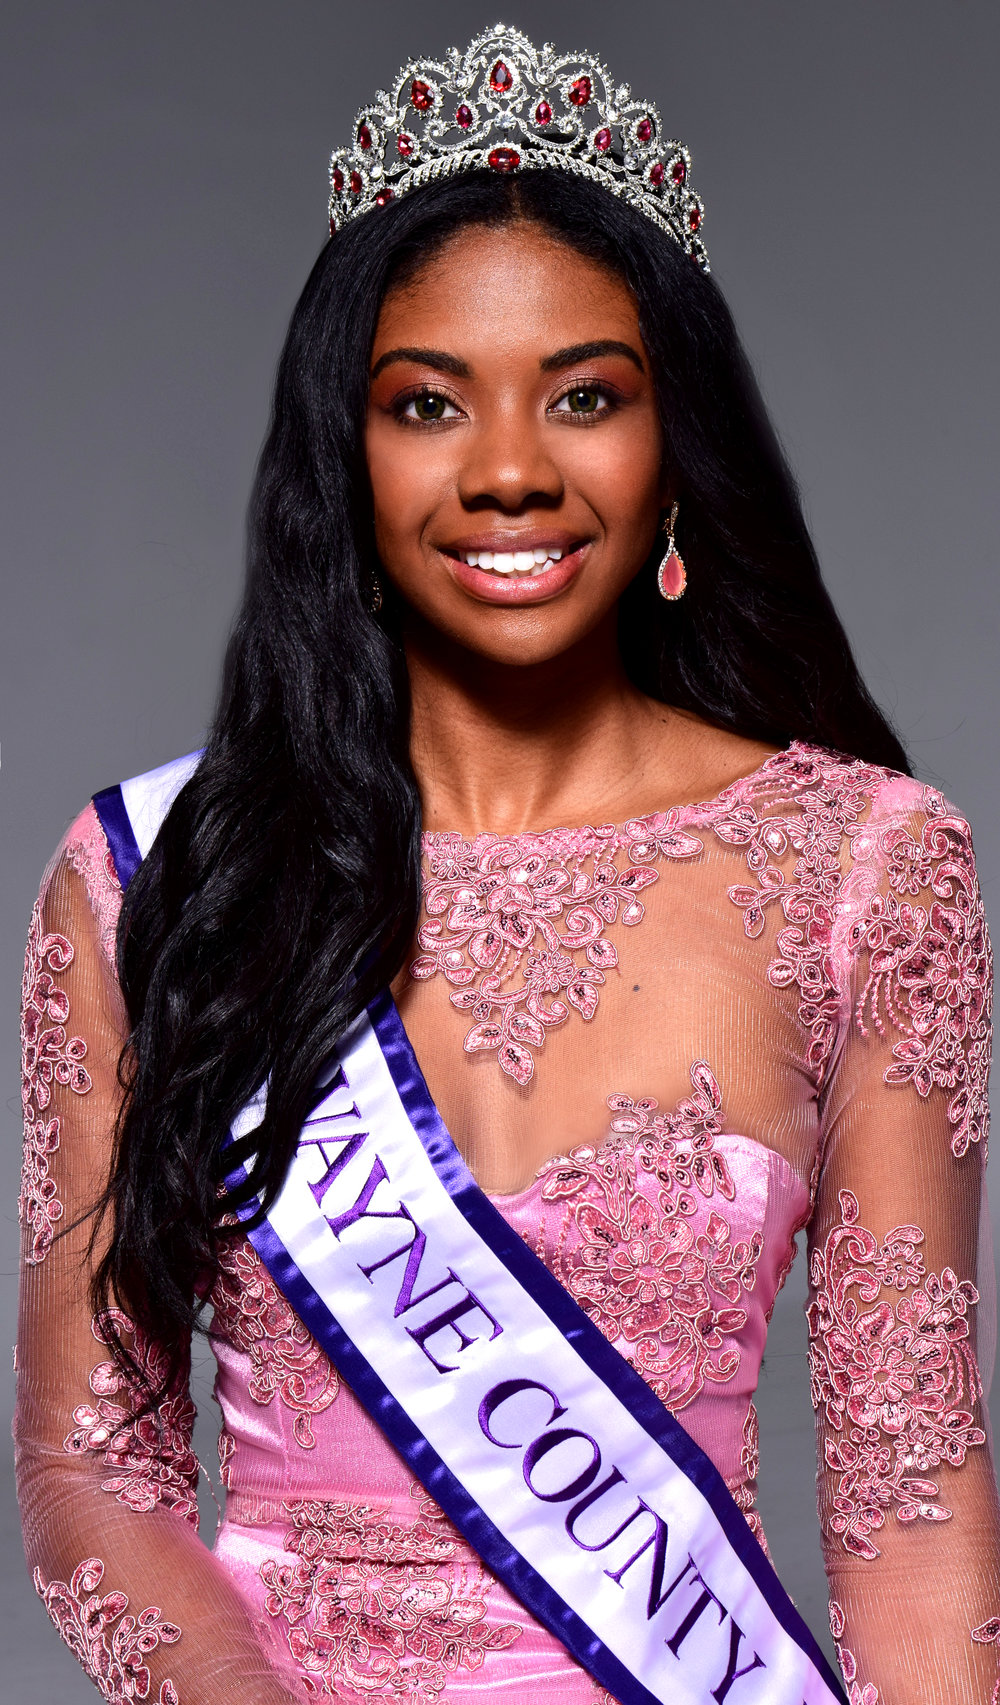 Miss Wayne County International - I would like to send a huge thank you to everyone reading this! I Jasmine Jones, social entrepreneur, and founder of #ThePrimplifePlan, have decided to compete in the Miss North Carolina International pageant! I need your help to make this vision a reality. In running for Miss North Carolina International 2019, it is not just about title, but about the impact that I will make on girls all over the state and beyond once I win.As an entrepreneur and educational advocate, I know the importance of community and how the unity builds the strongest of foundations. #ThePrimplifePlan is a unique and creative platform that seeks to empower young girls through the use of graphic novels, community workshops, and positive lifestyle branding. We put our focus on girls between the ages of six and fourteen, but anyone can be a